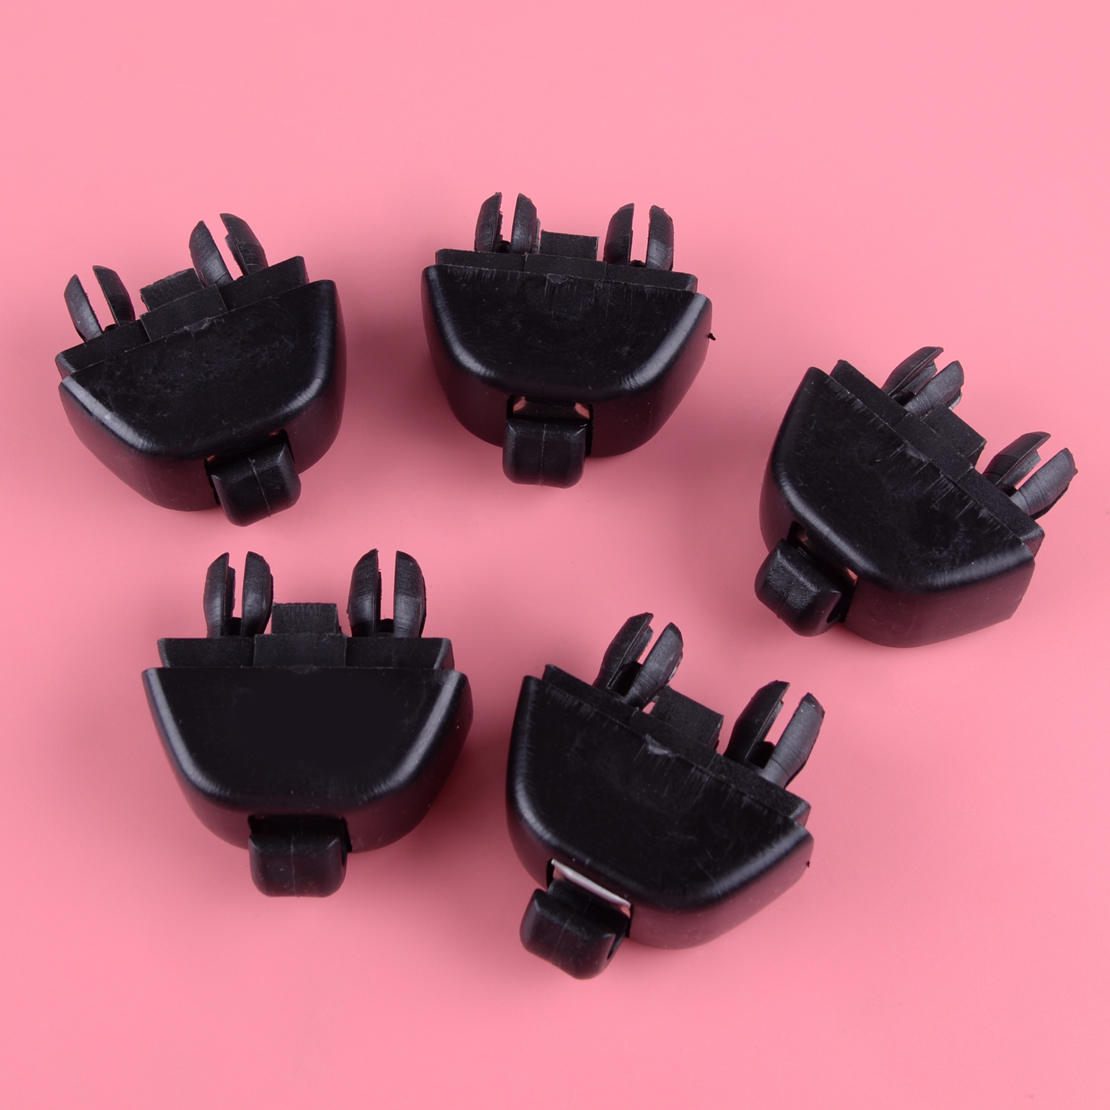 DWCX 5Pcs Car Inner Sun Visor Hook Clip Black 4F0857561 Fit for Audi A6 C6 2004 2005 2006 2007 2008 2009 2010 2011 image